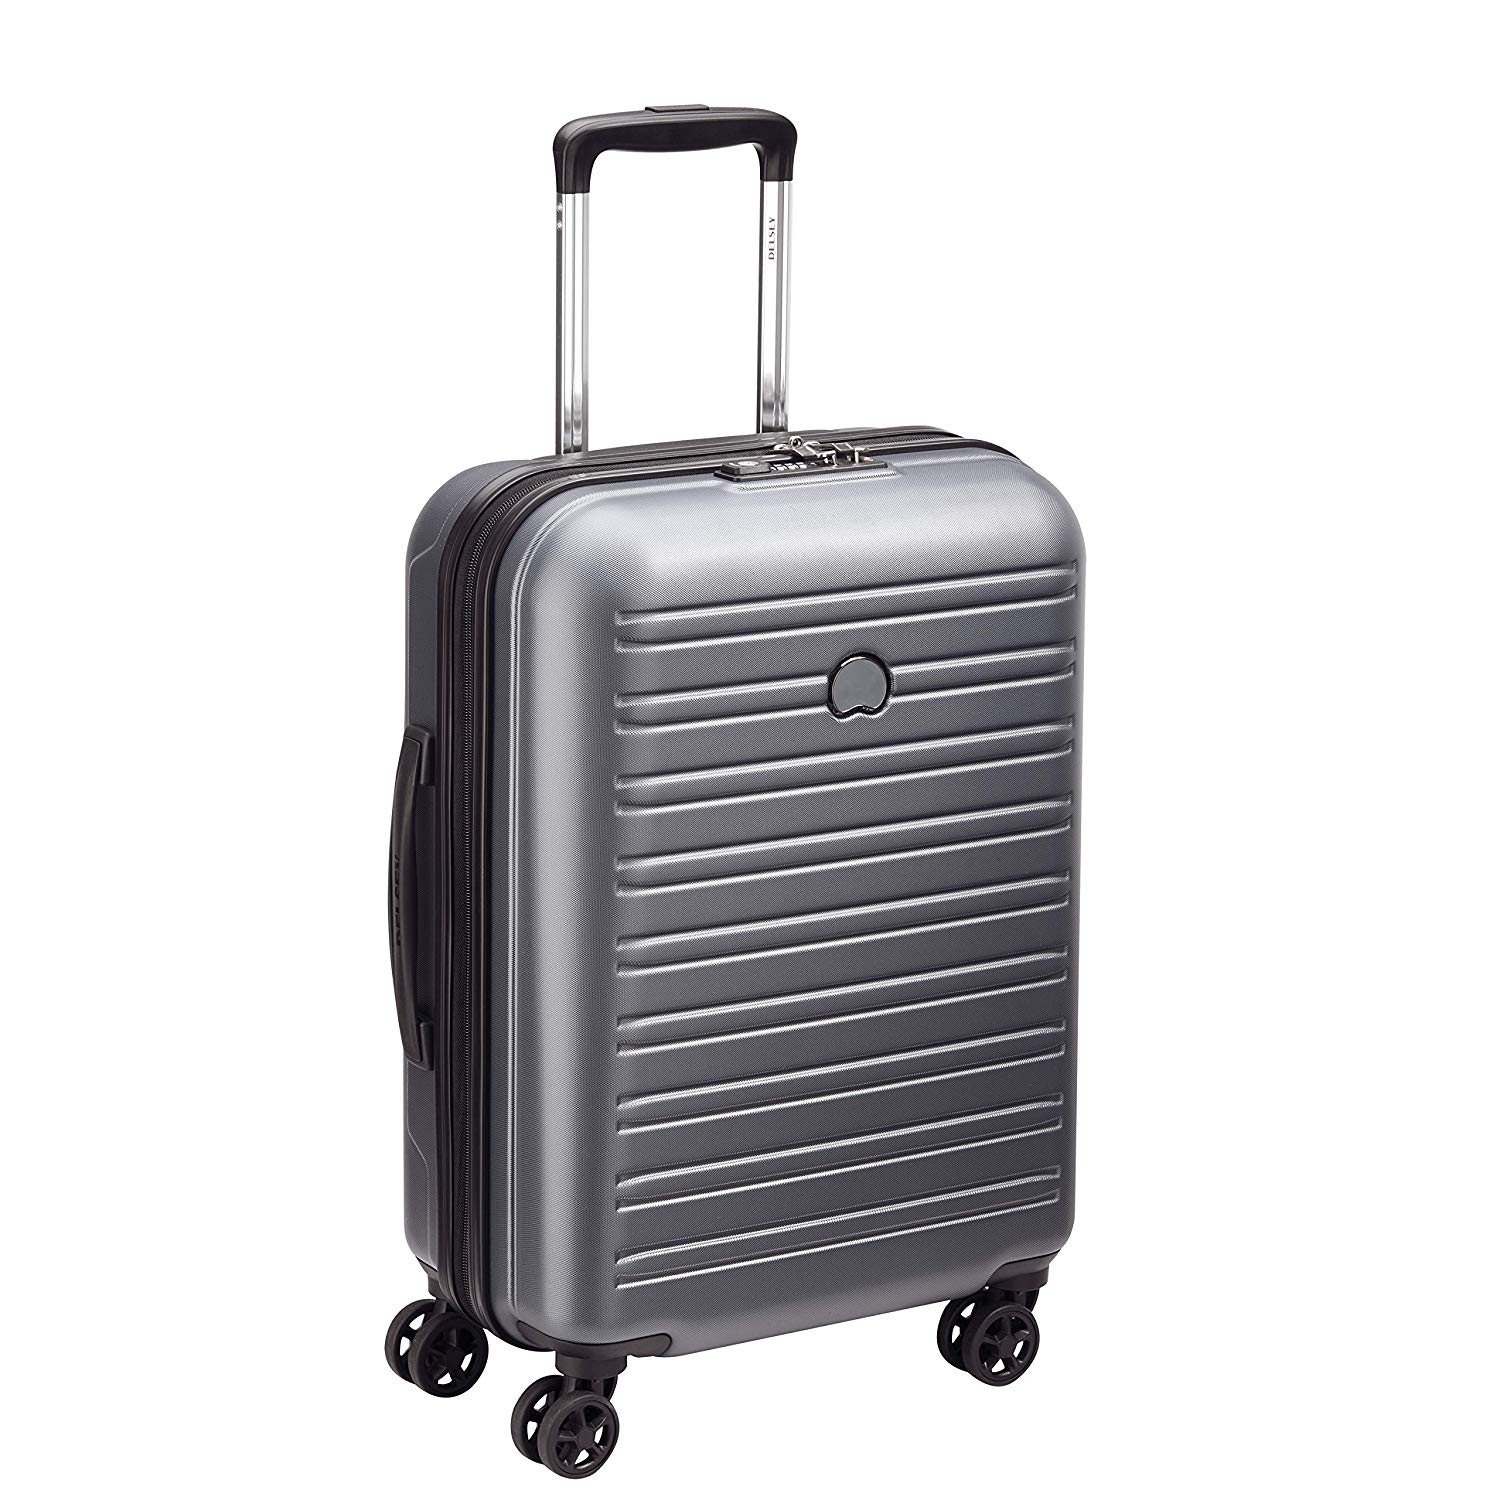 Delsey Segur 2.0 4 Wheel Cabin Suitcase - 55cm - Grey